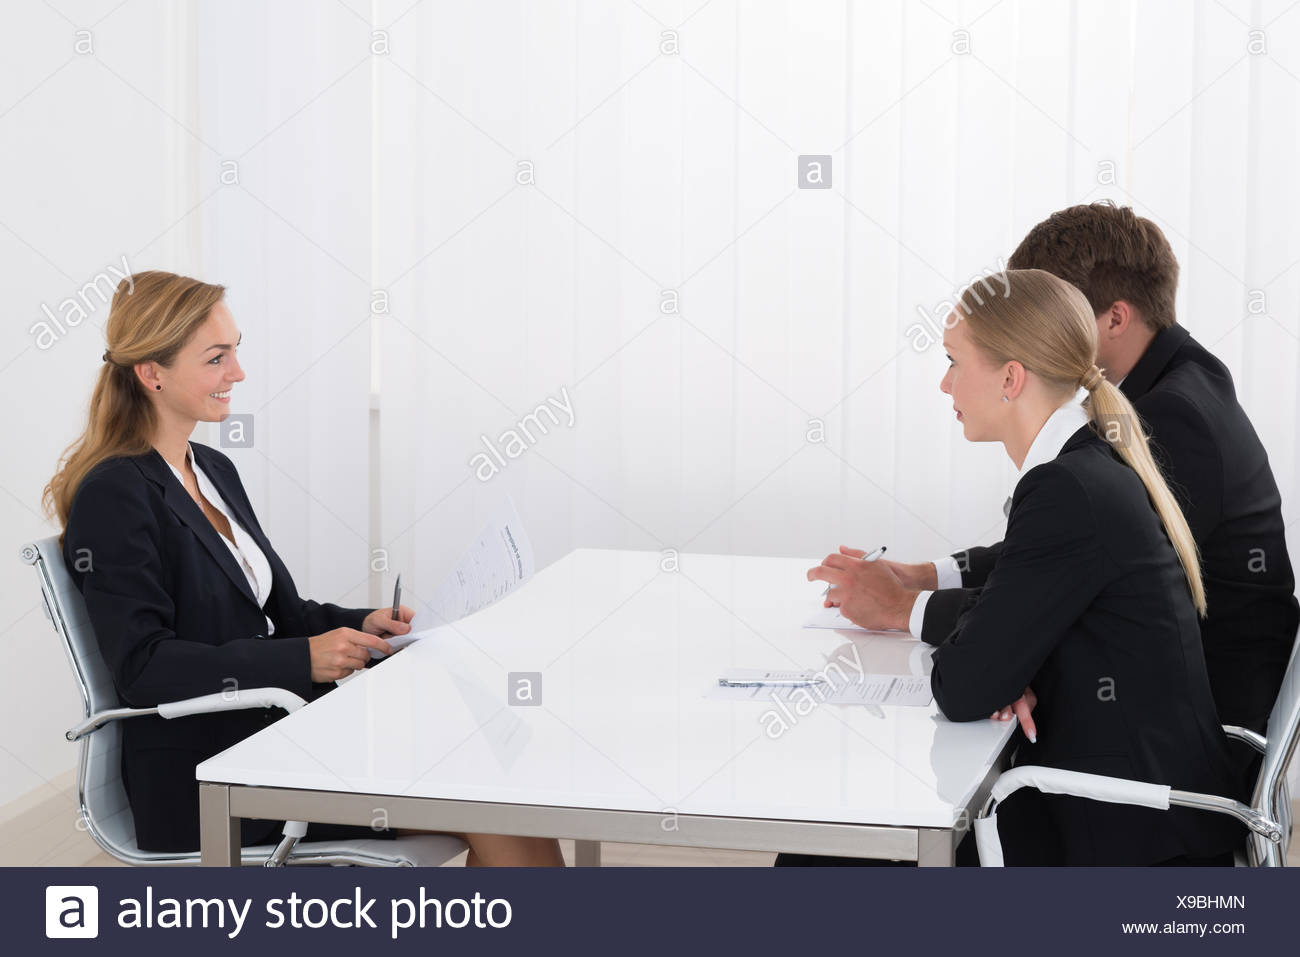 Female Manager Interviewing An Applicant - Stock Image